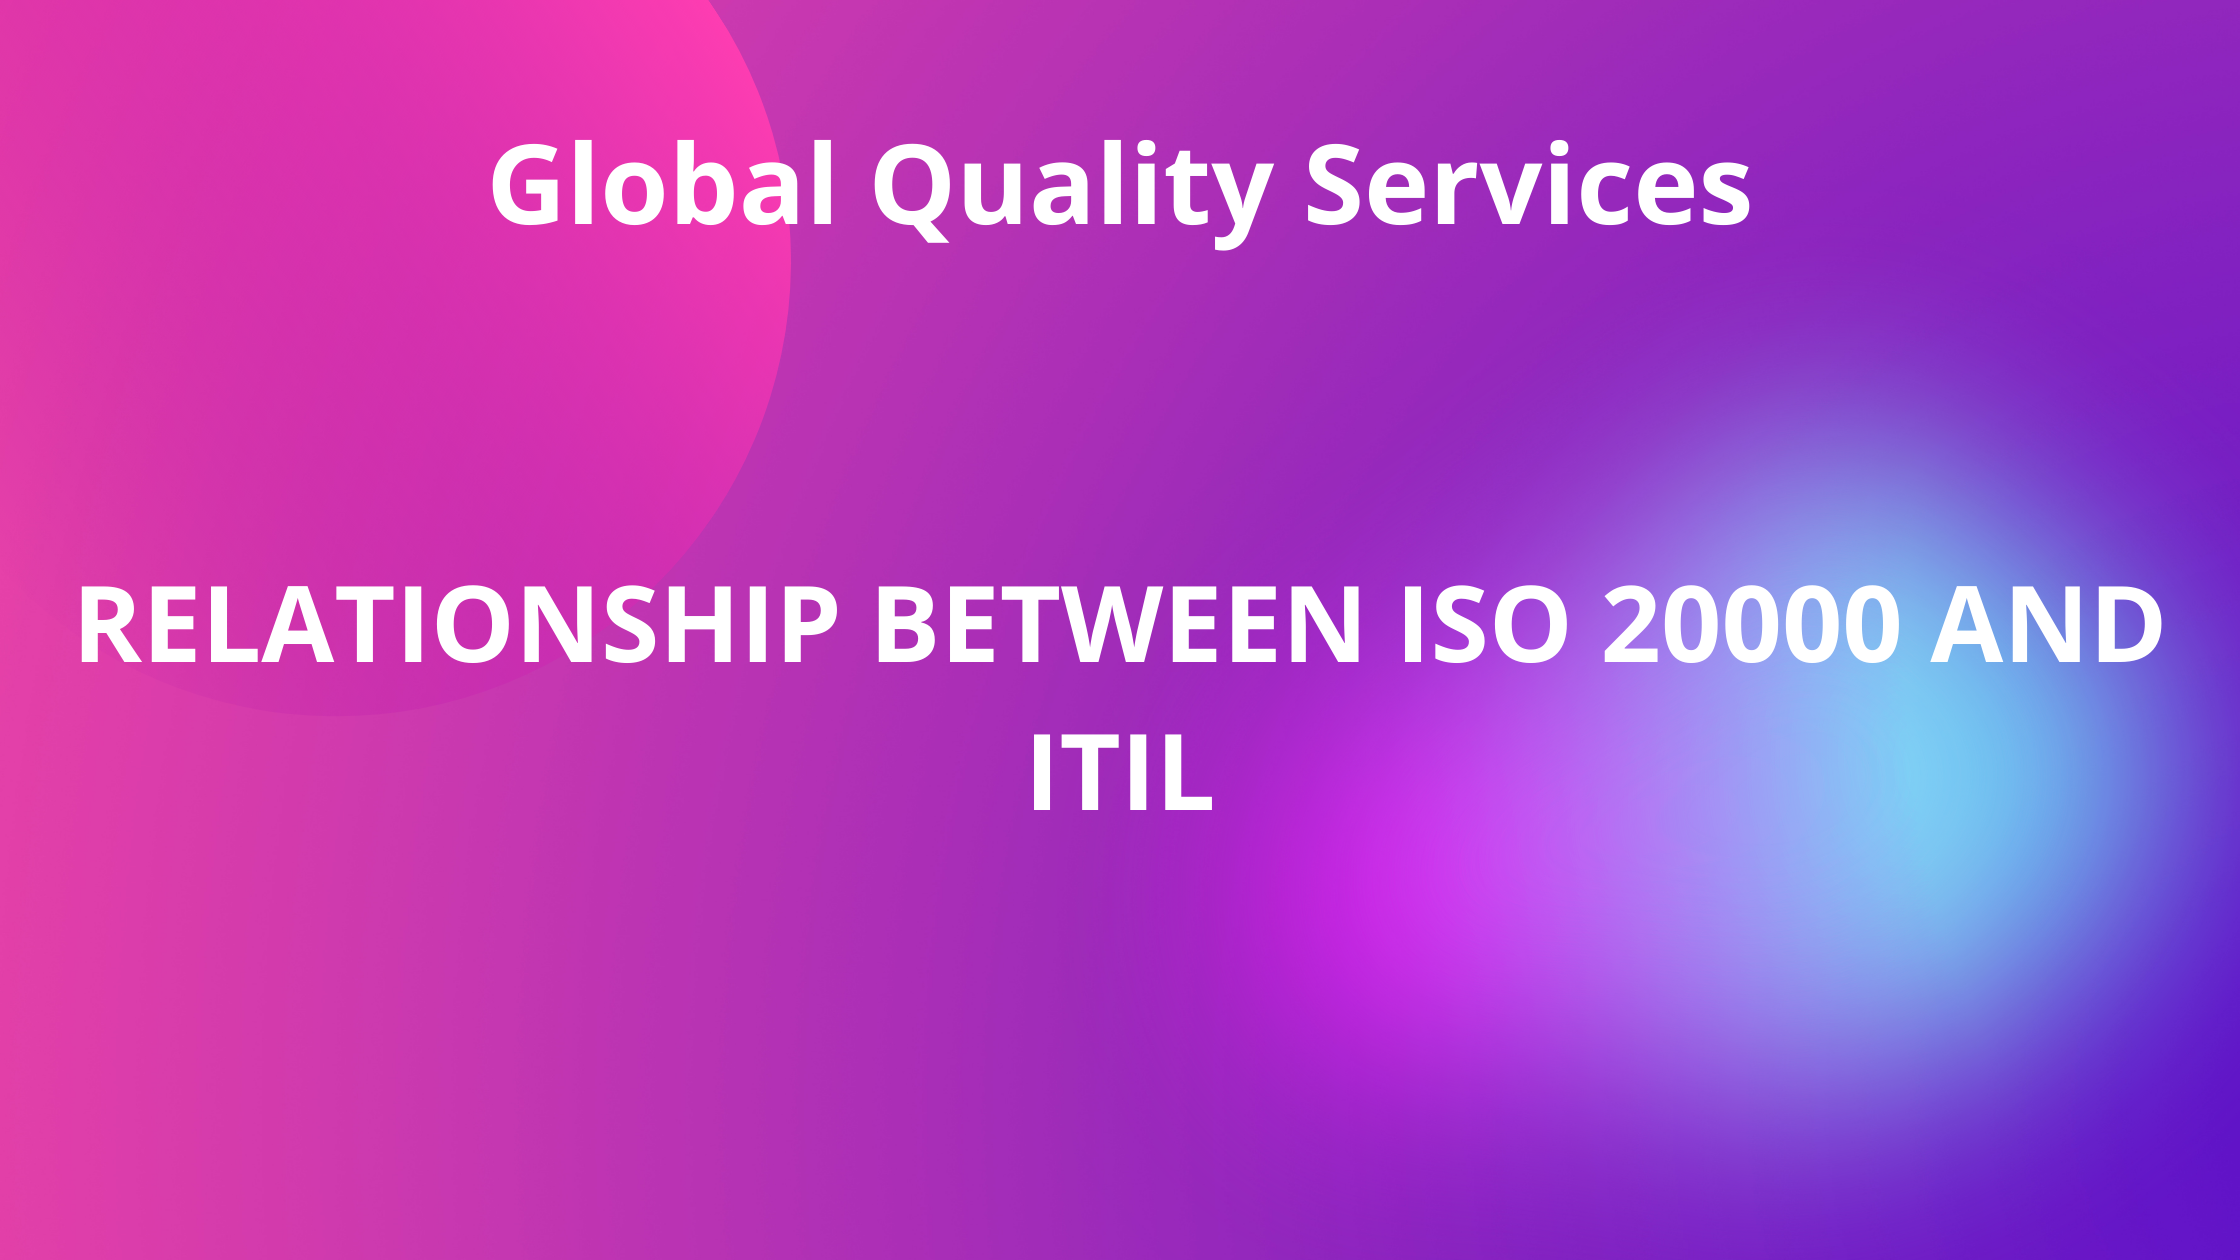 RELATIONSHIP BETWEEN ISO 20000 and ITIL